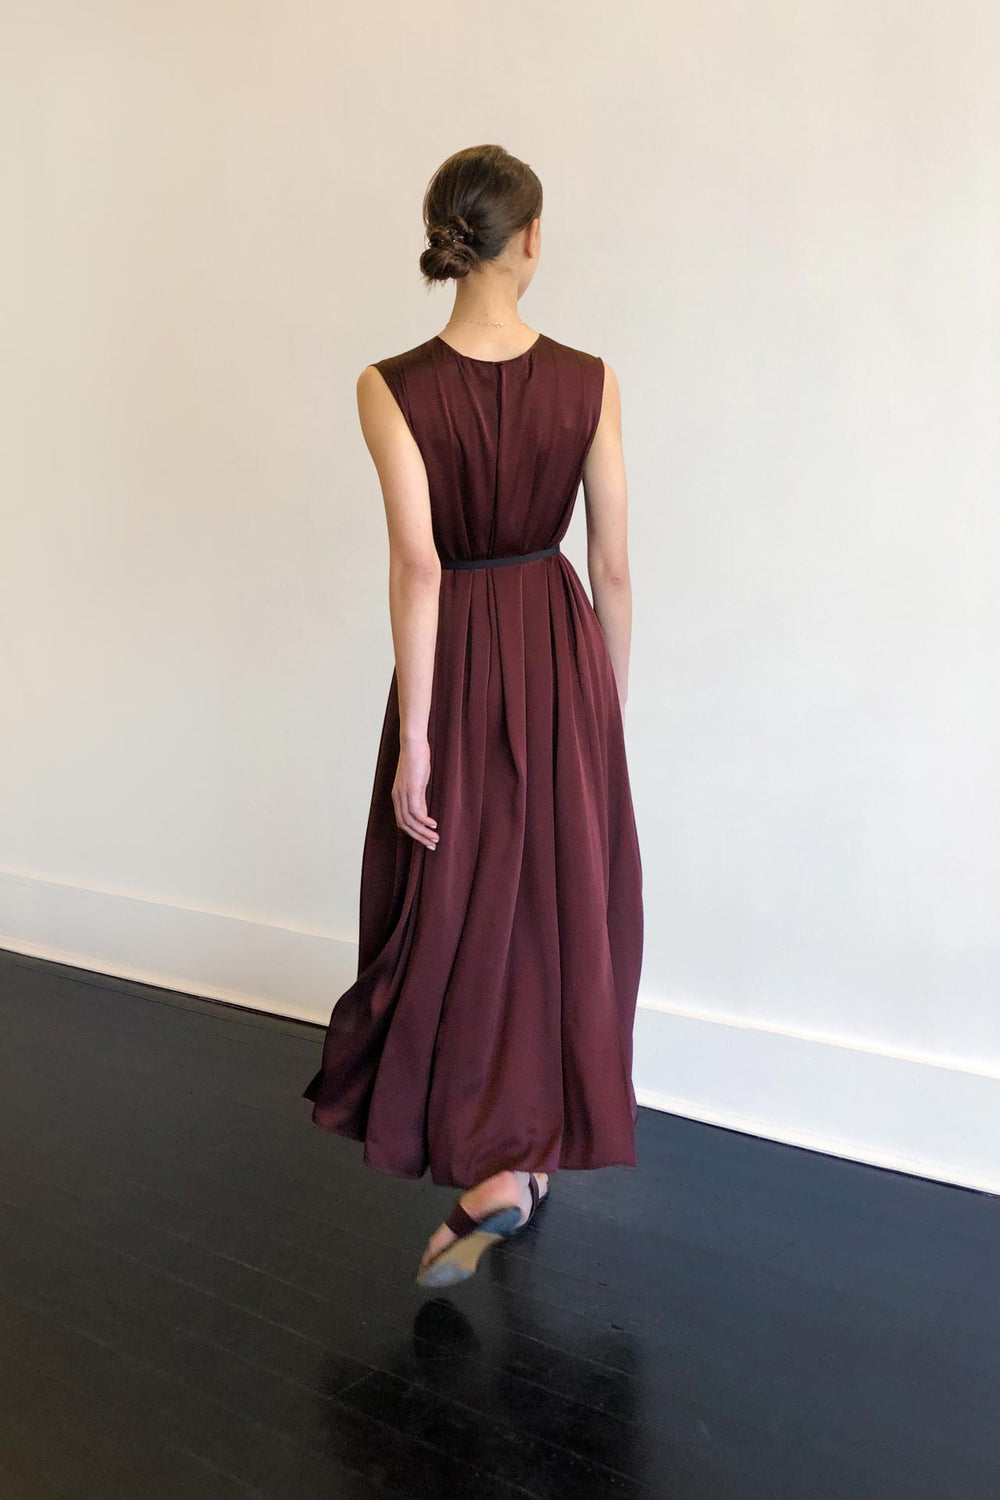 Fashion Designer CARL KAPP collection | Palm Onesize Fits All cocktail dress Maroon | Sydney Australia